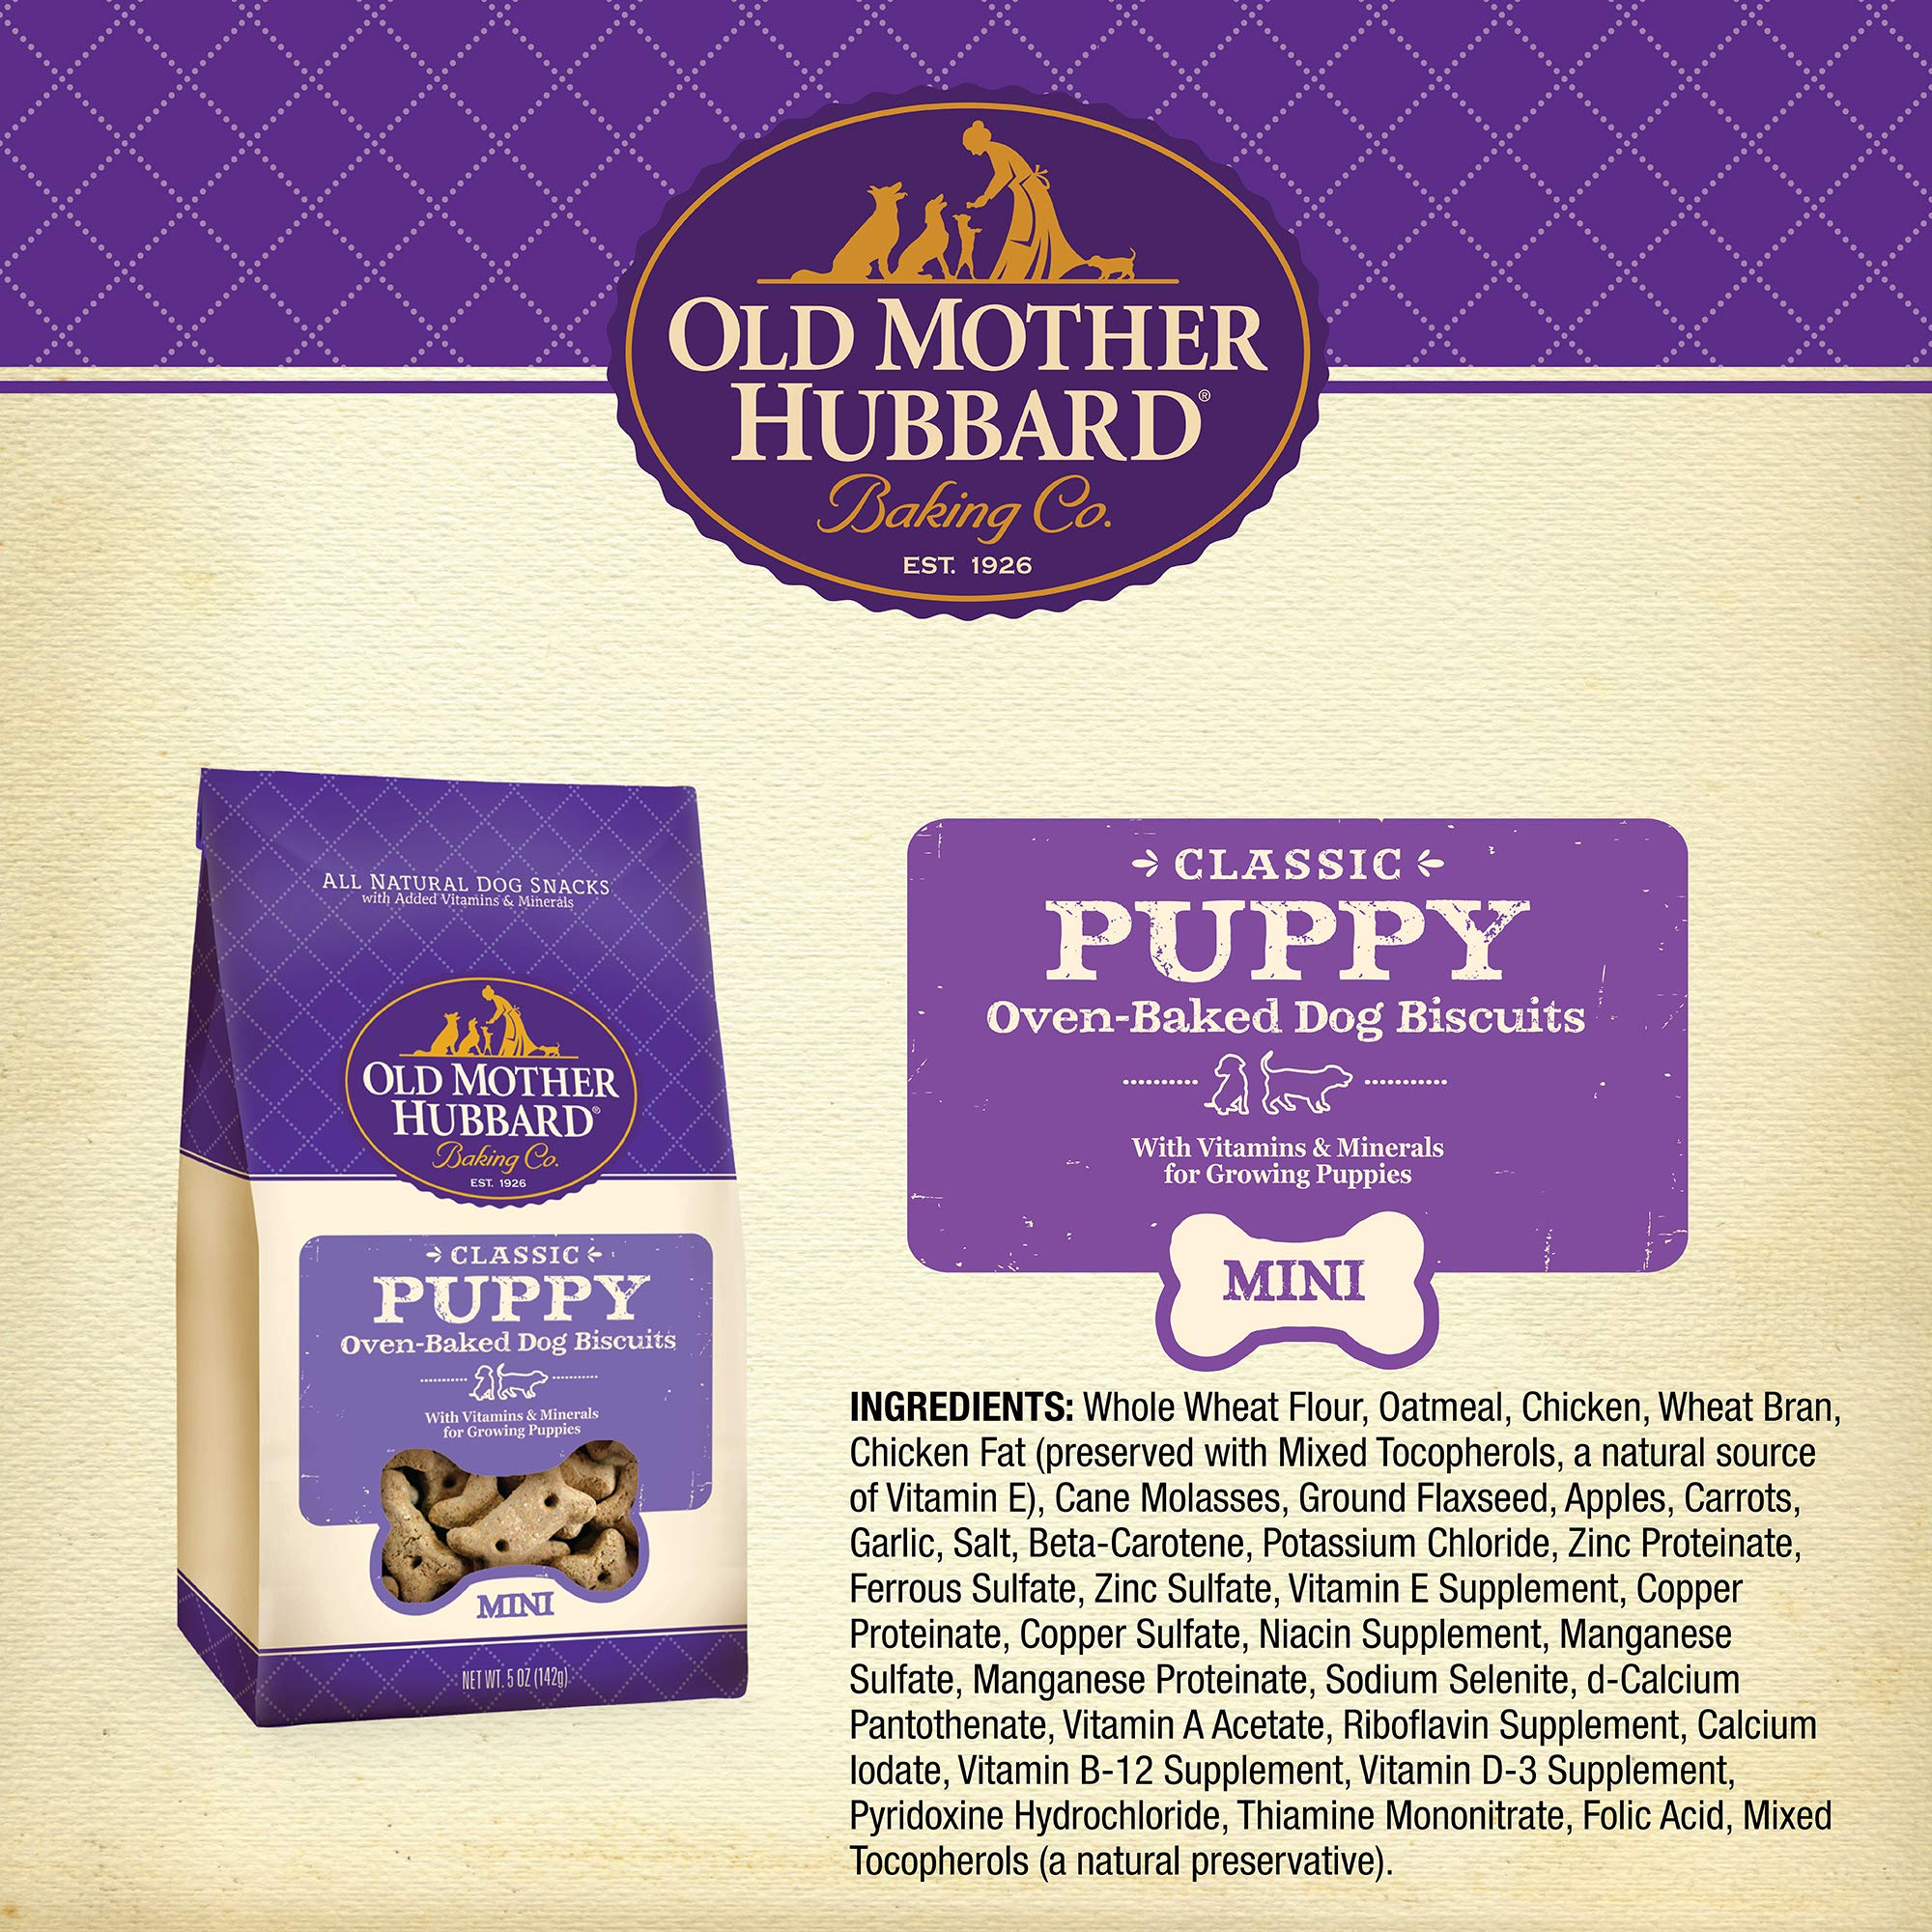 Old Mother Hubbard Classic Crunchy Natural Puppy Treats, Mini Dog Biscuits, 5-Ounce Bag by Old Mother Hubbard (Image #2)